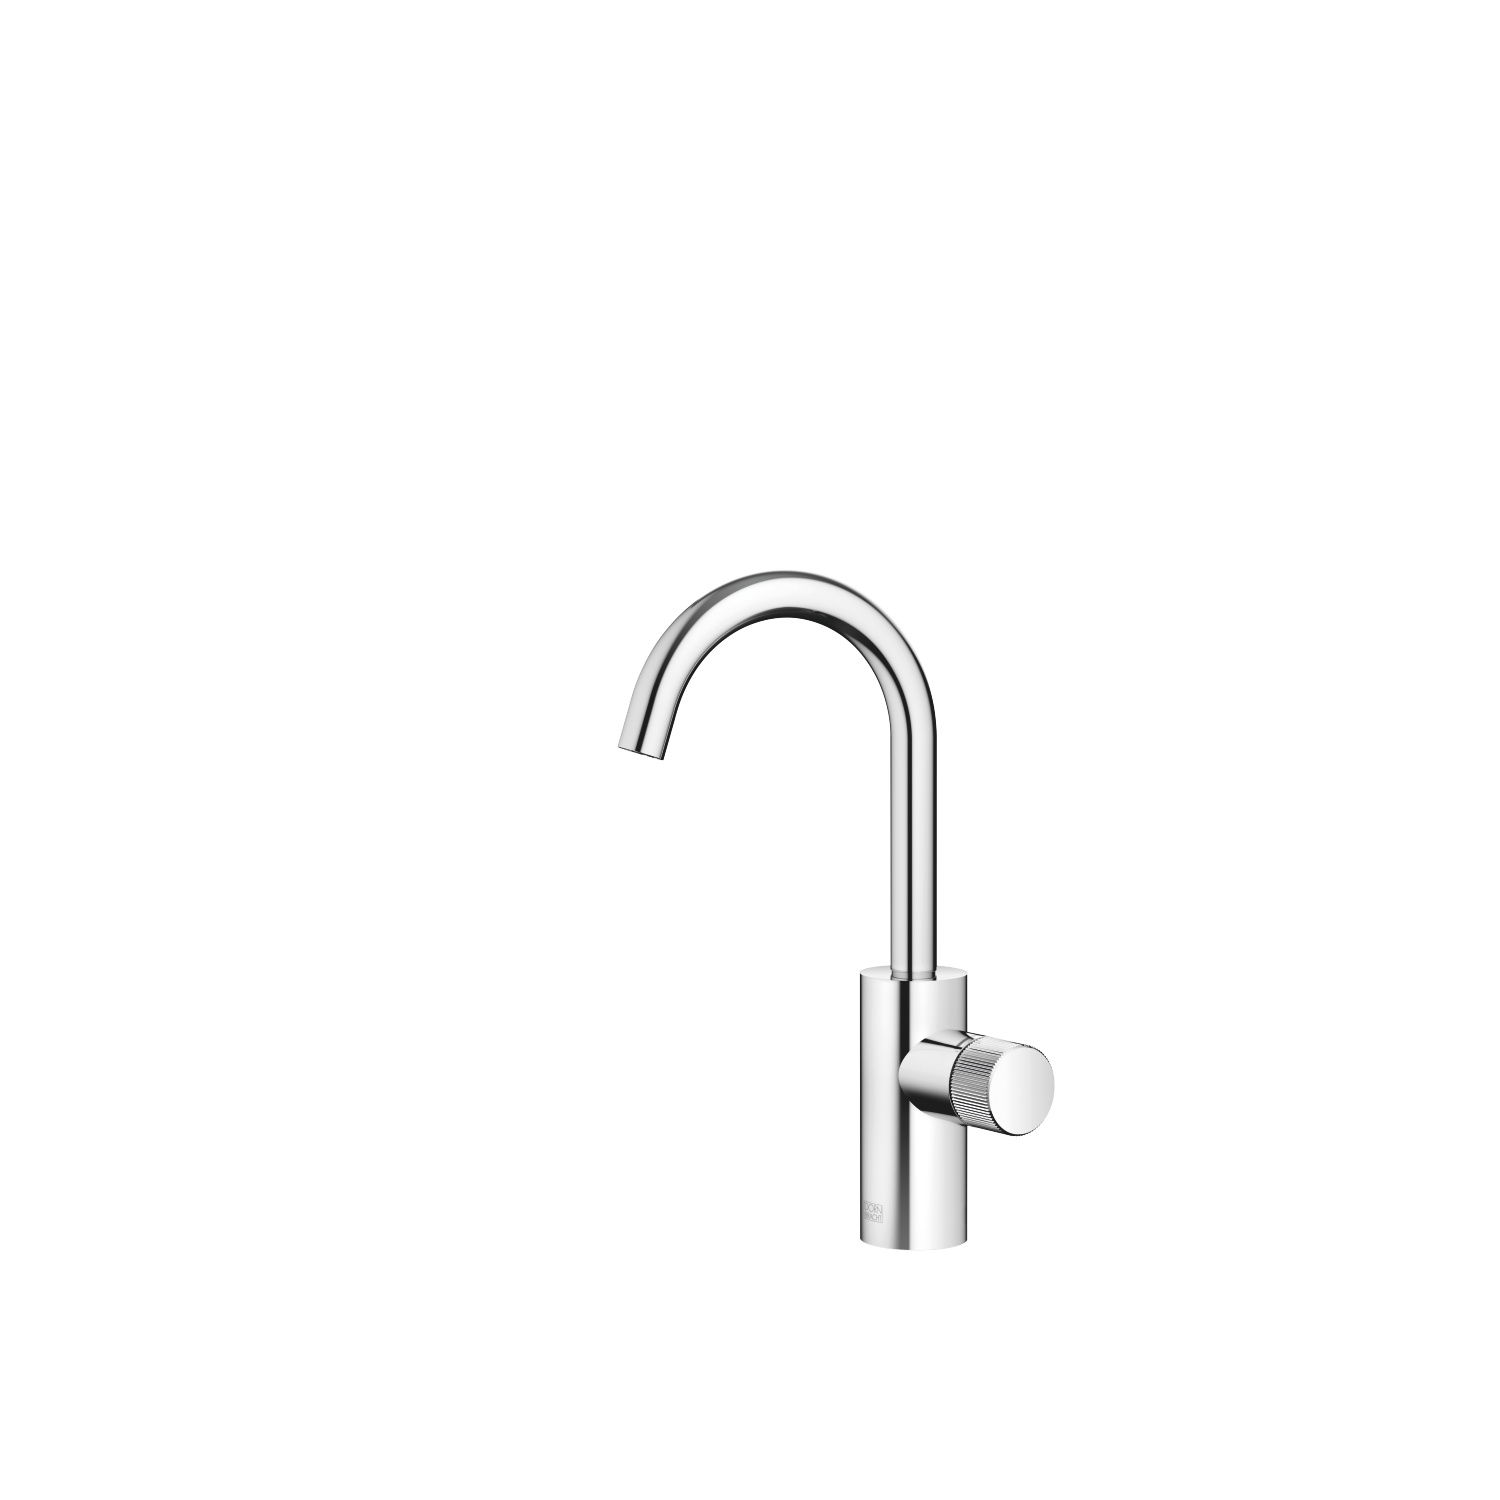 META PURE Single-lever basin mixer without pop-up waste - polished chrome